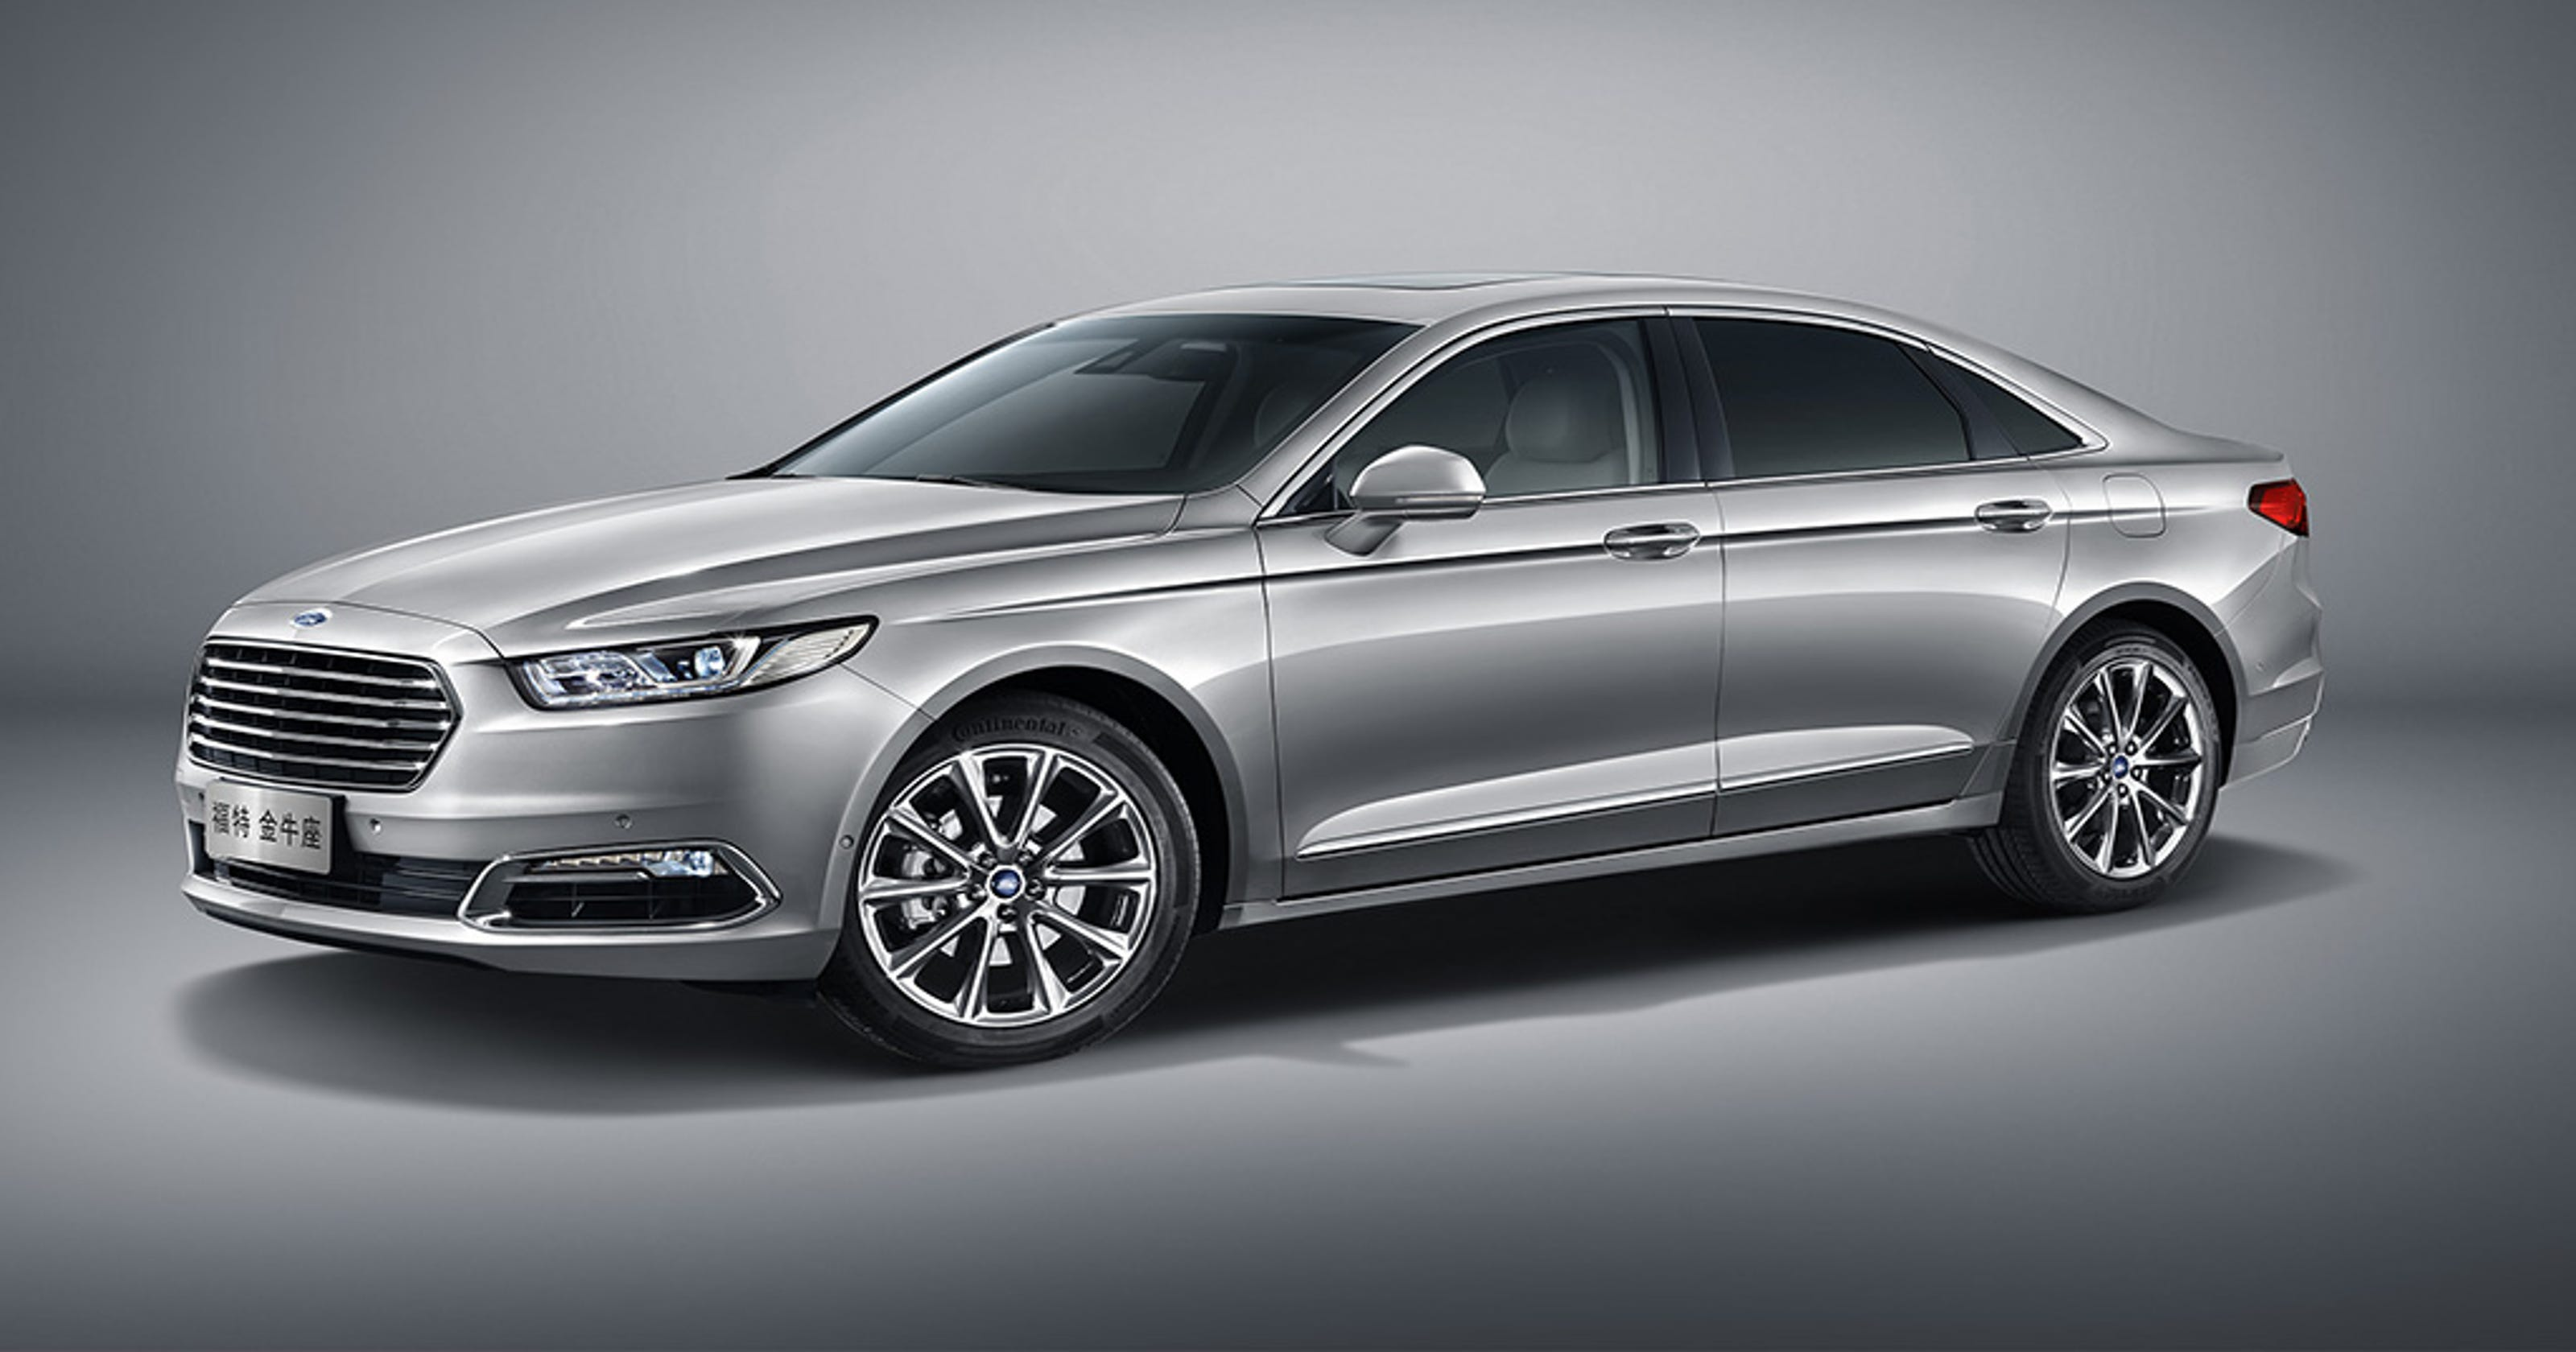 Ford shows redone Taurus for China b63979f72d590